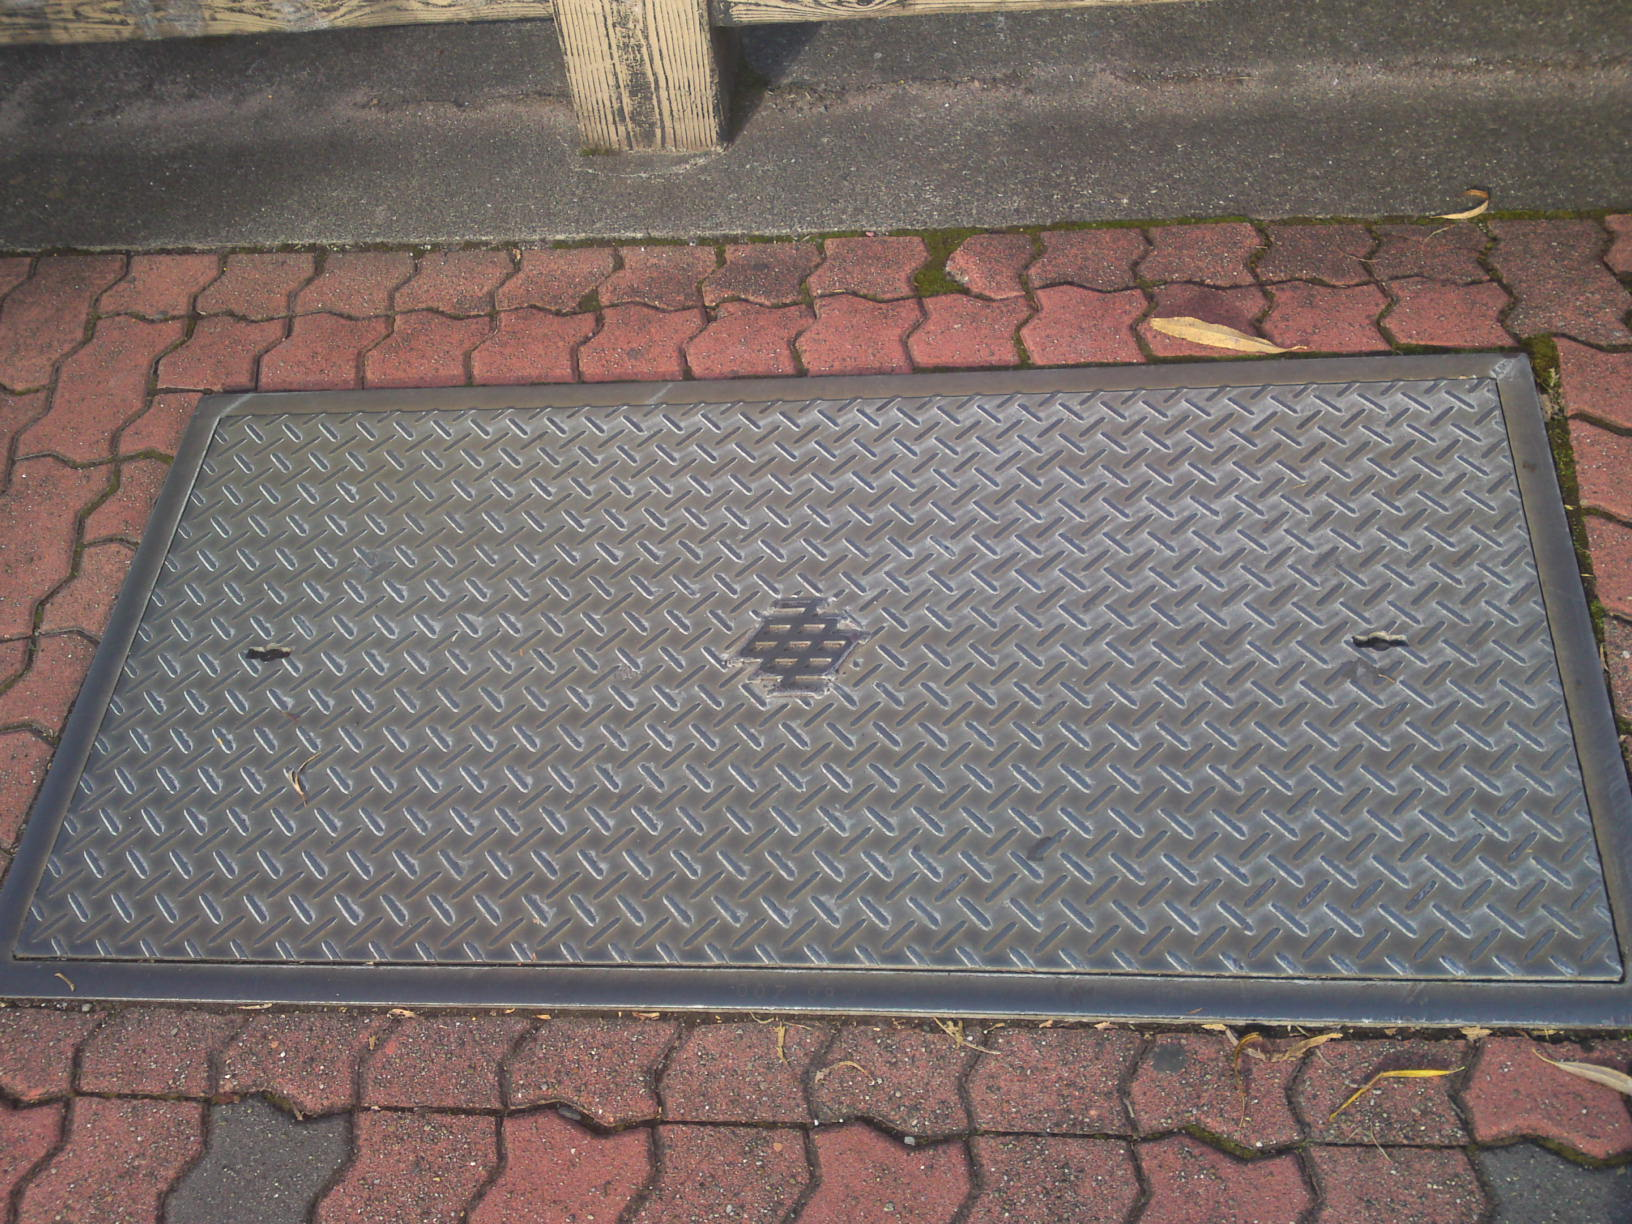 Manhole covers in shizuoka prefecture pictures